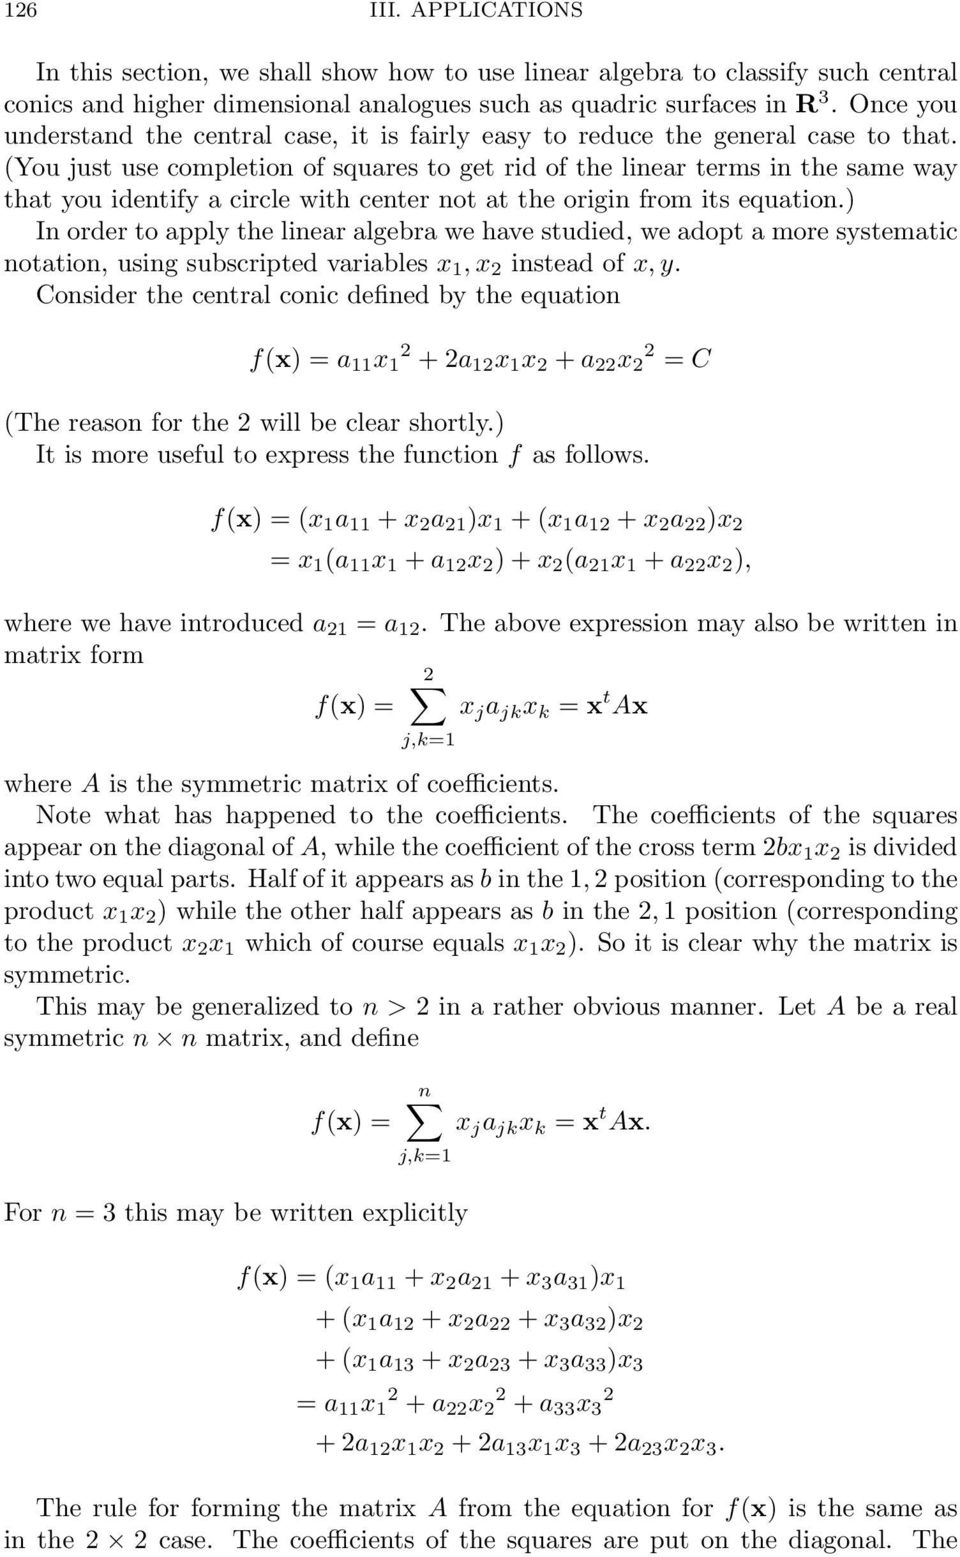 origin from its equation) In order to apply the linear algebra we have studied, we adopt a more systematic notation, using subscripted variables x,x instead of x, y Consider the central conic defined